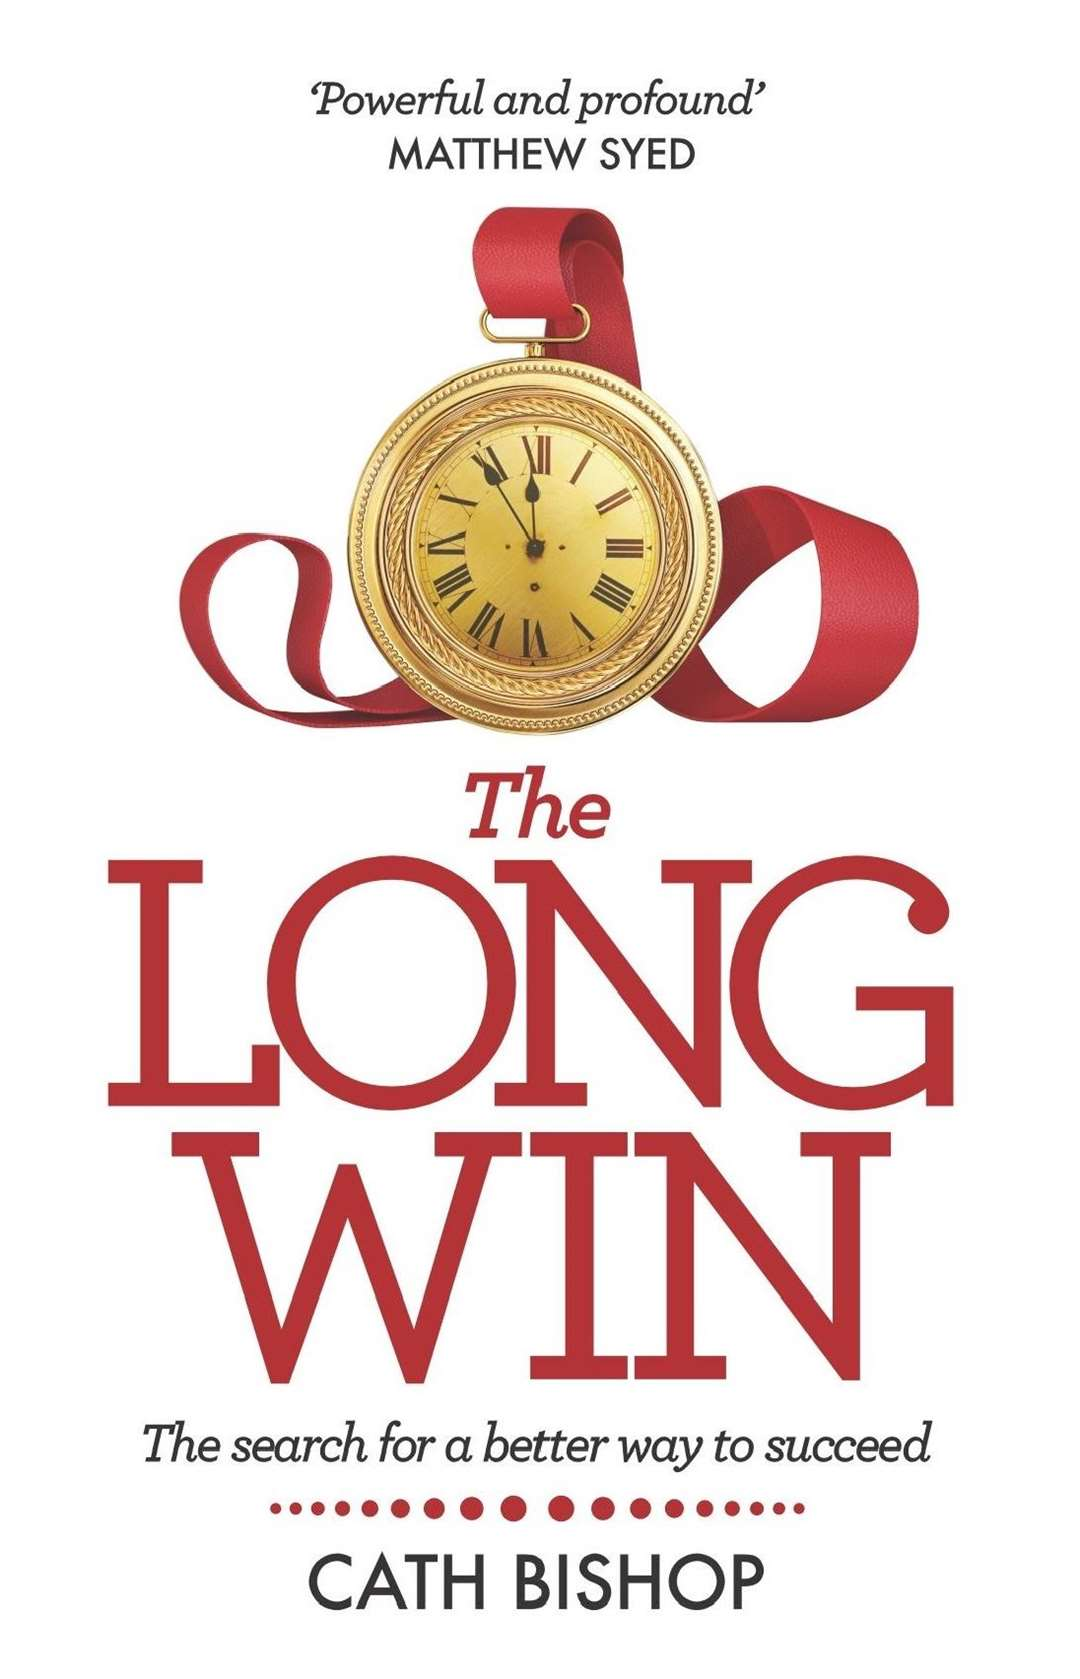 Cath Bishop, a former Cambridge University Women's Boat Club rower and chair, has written the book The Long Win.(42742480)